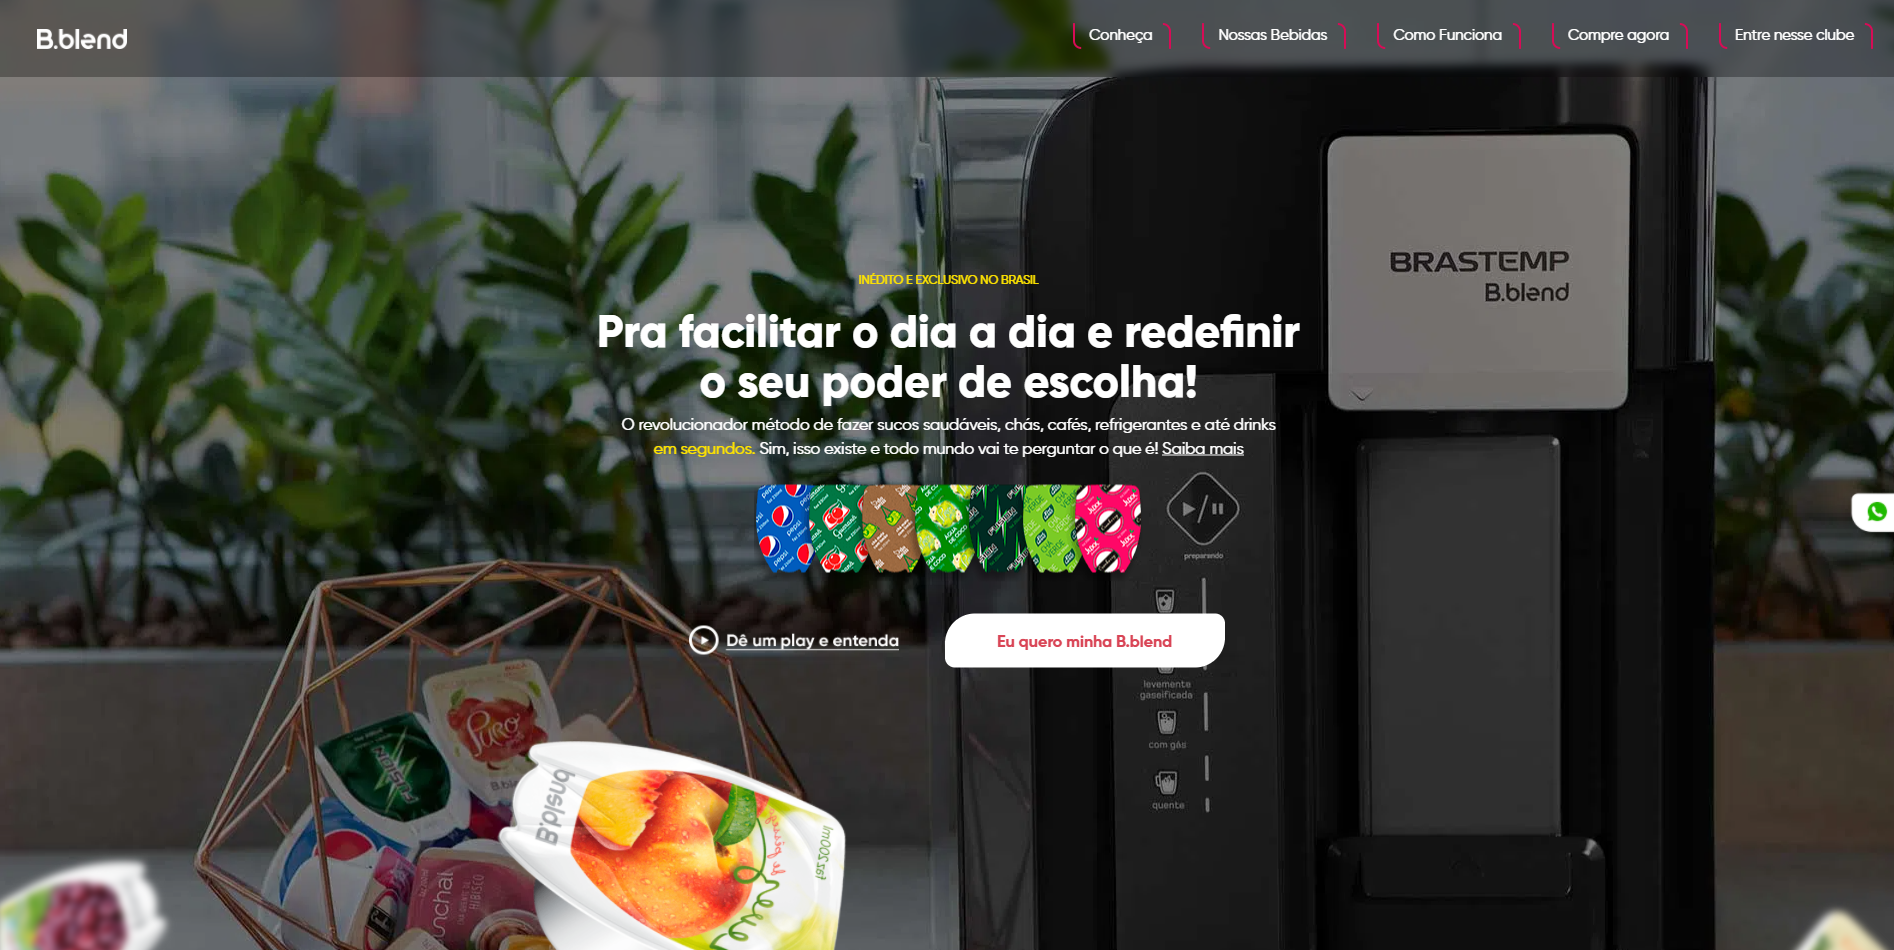 bblend-maquinas homepage